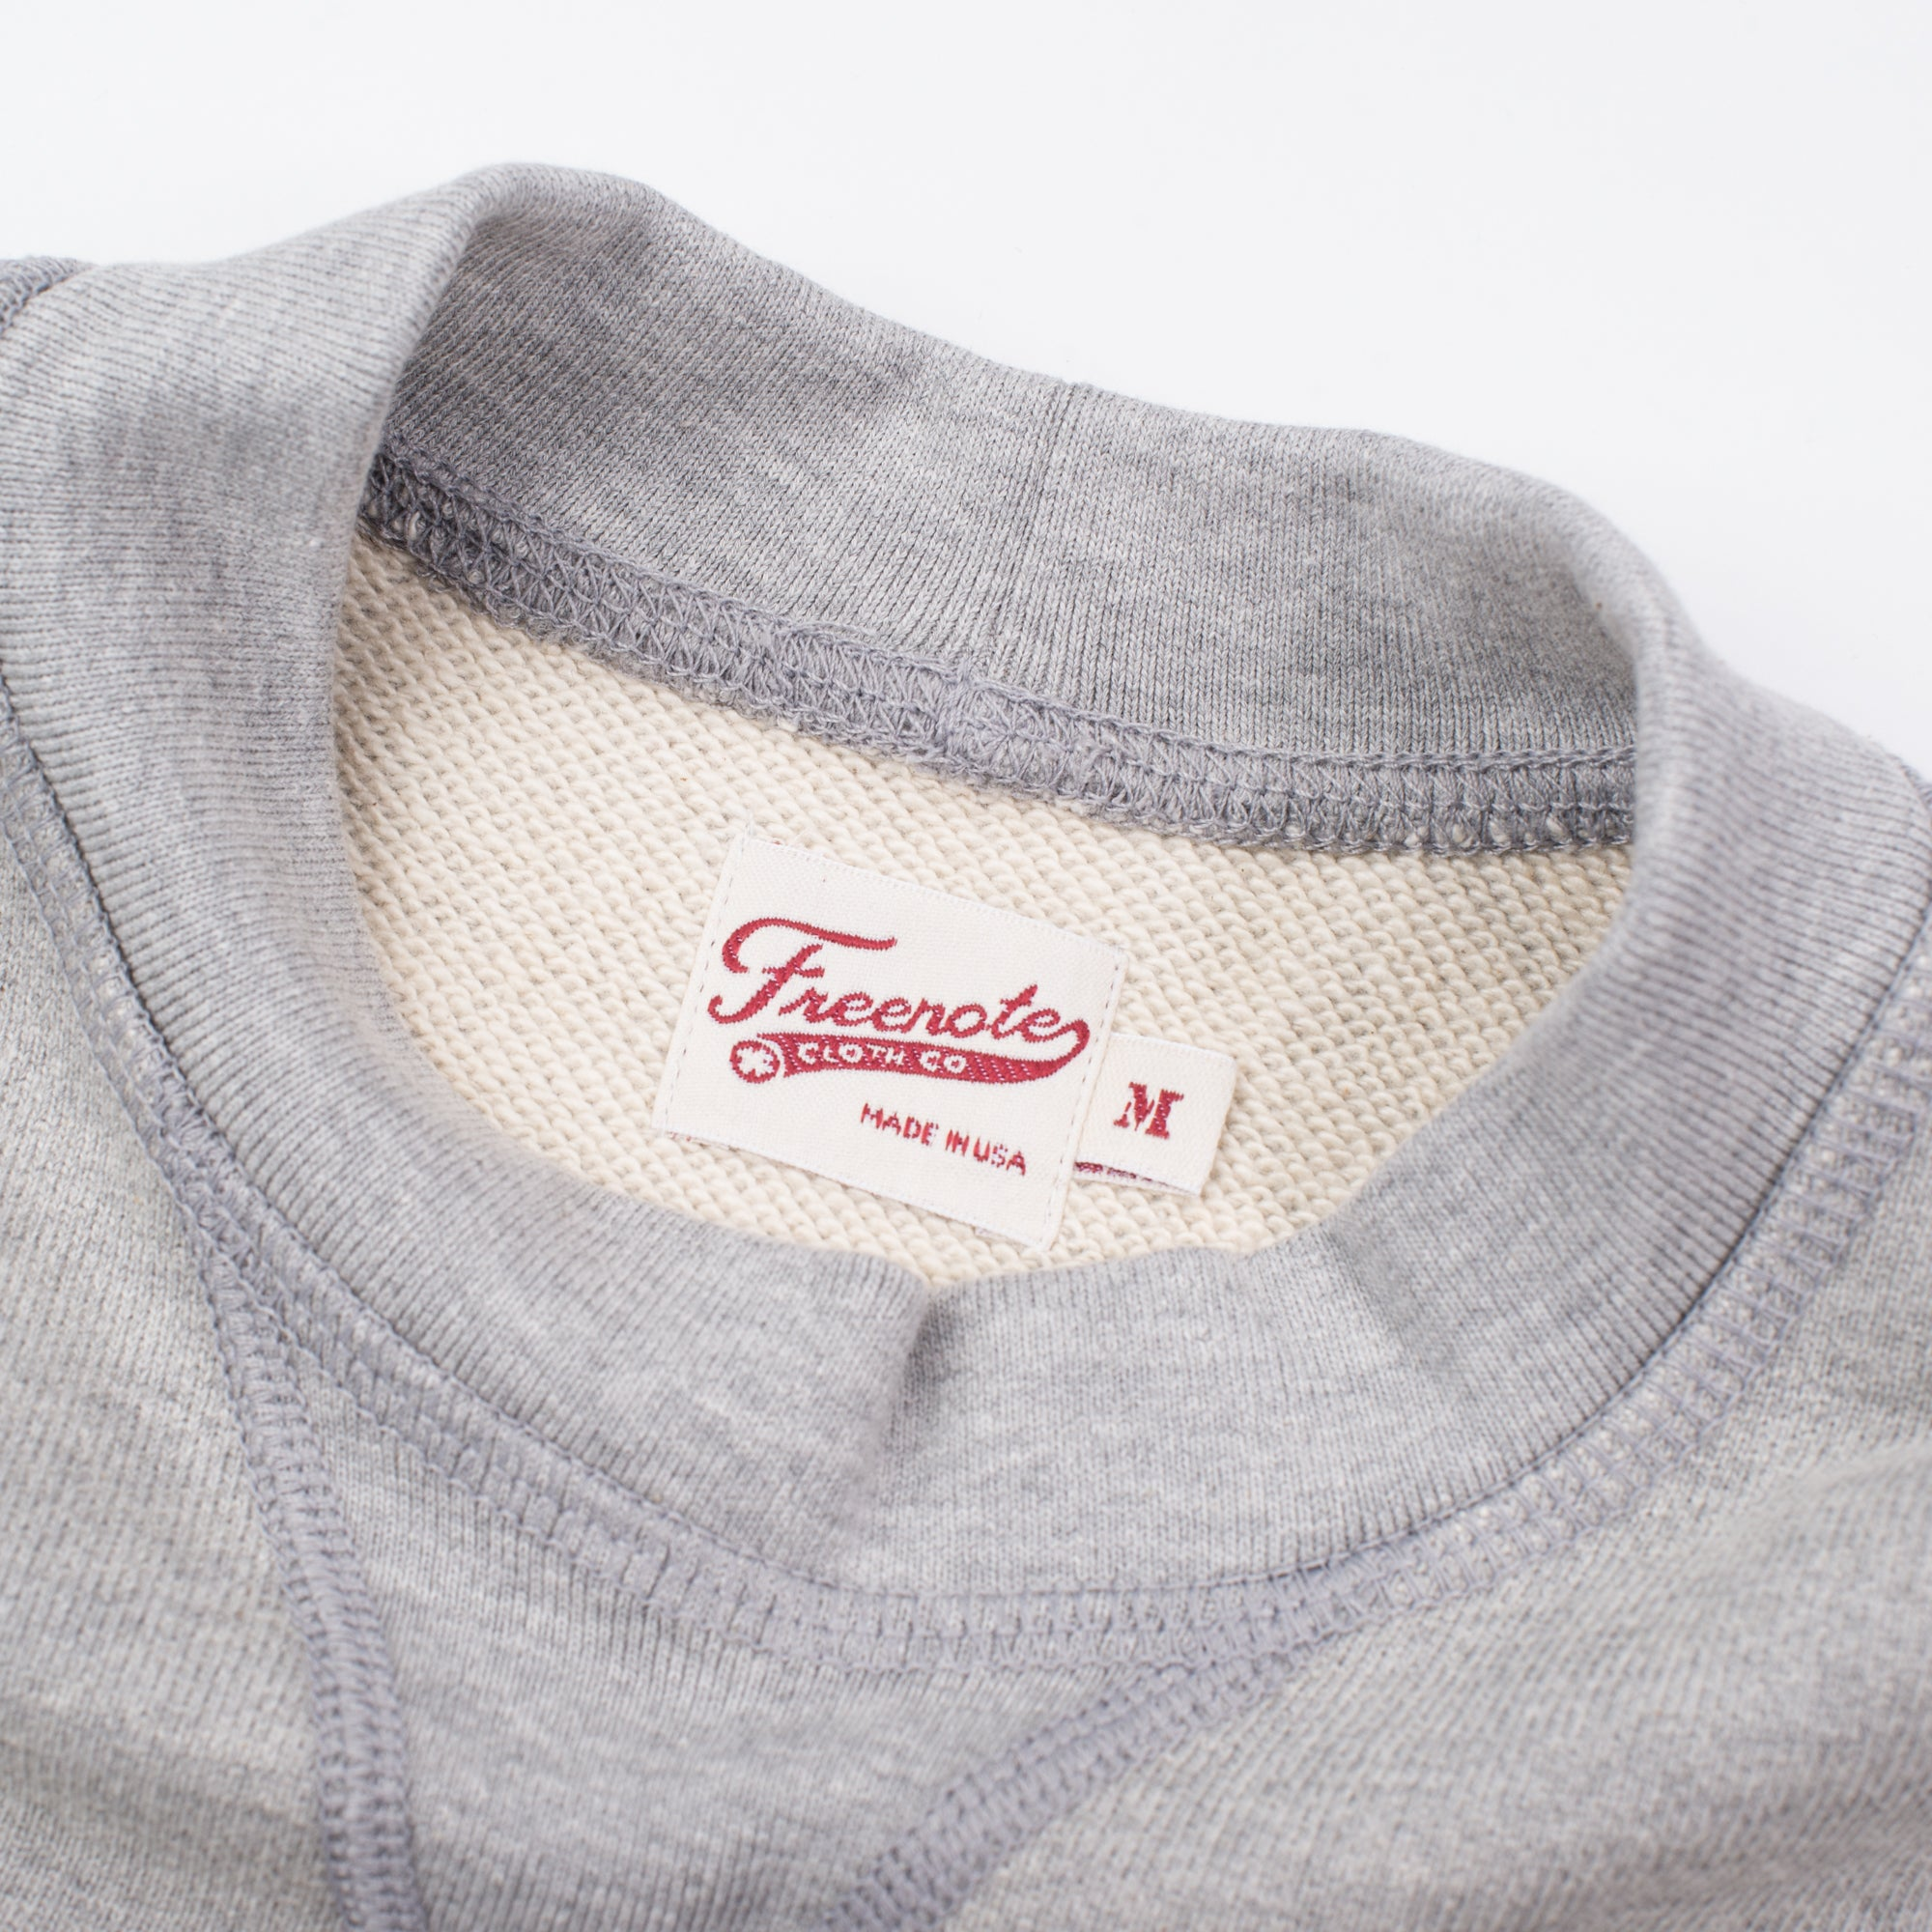 Deck Sweatshirt Heather Grey Label